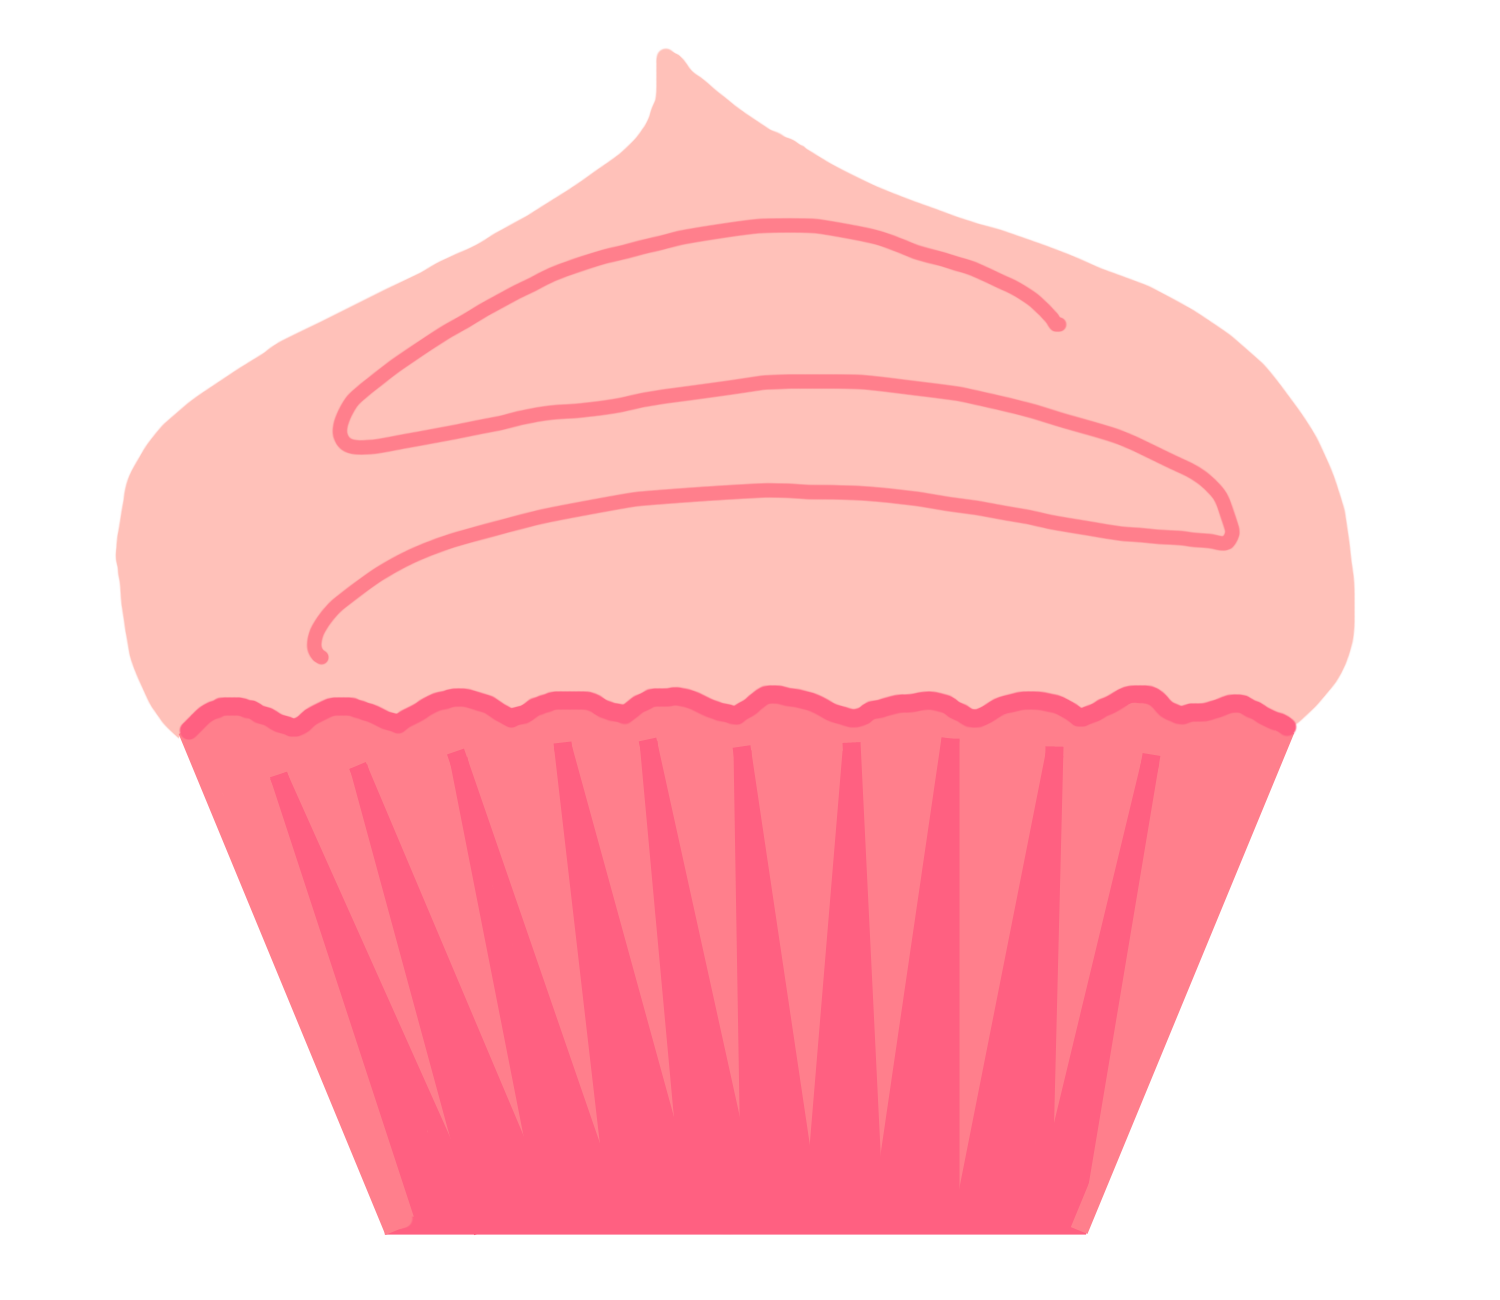 image library download Cupcake Clip Art Black And White